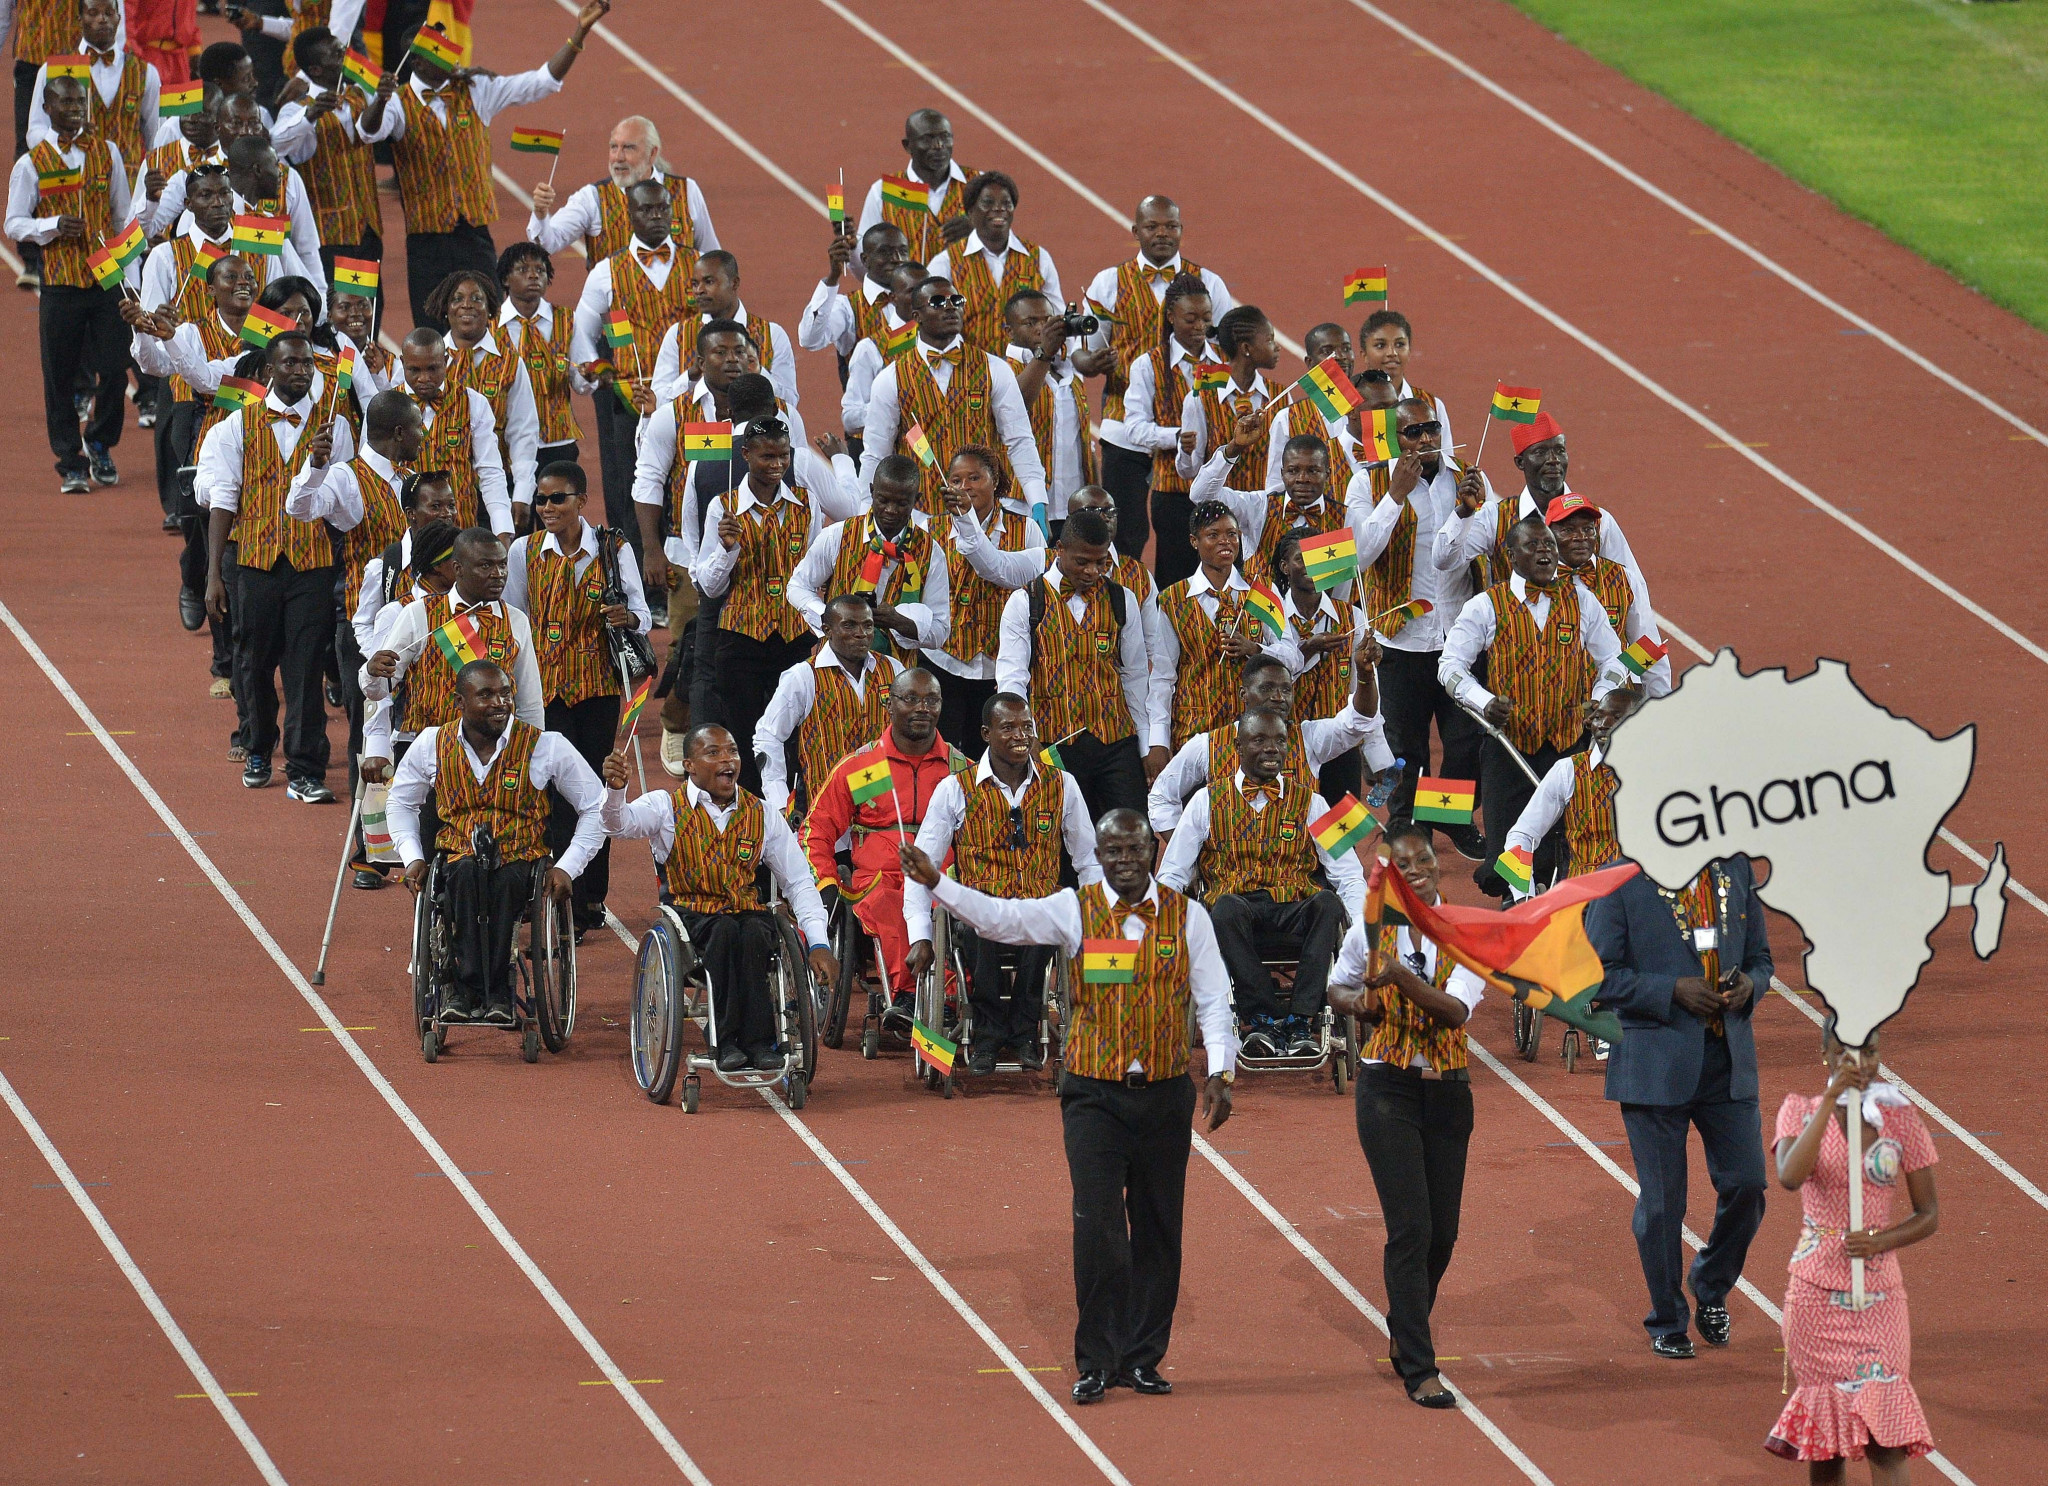 Ghana's Deputy Sports Minister gives words of encouragement to athletes at 2019 African Games